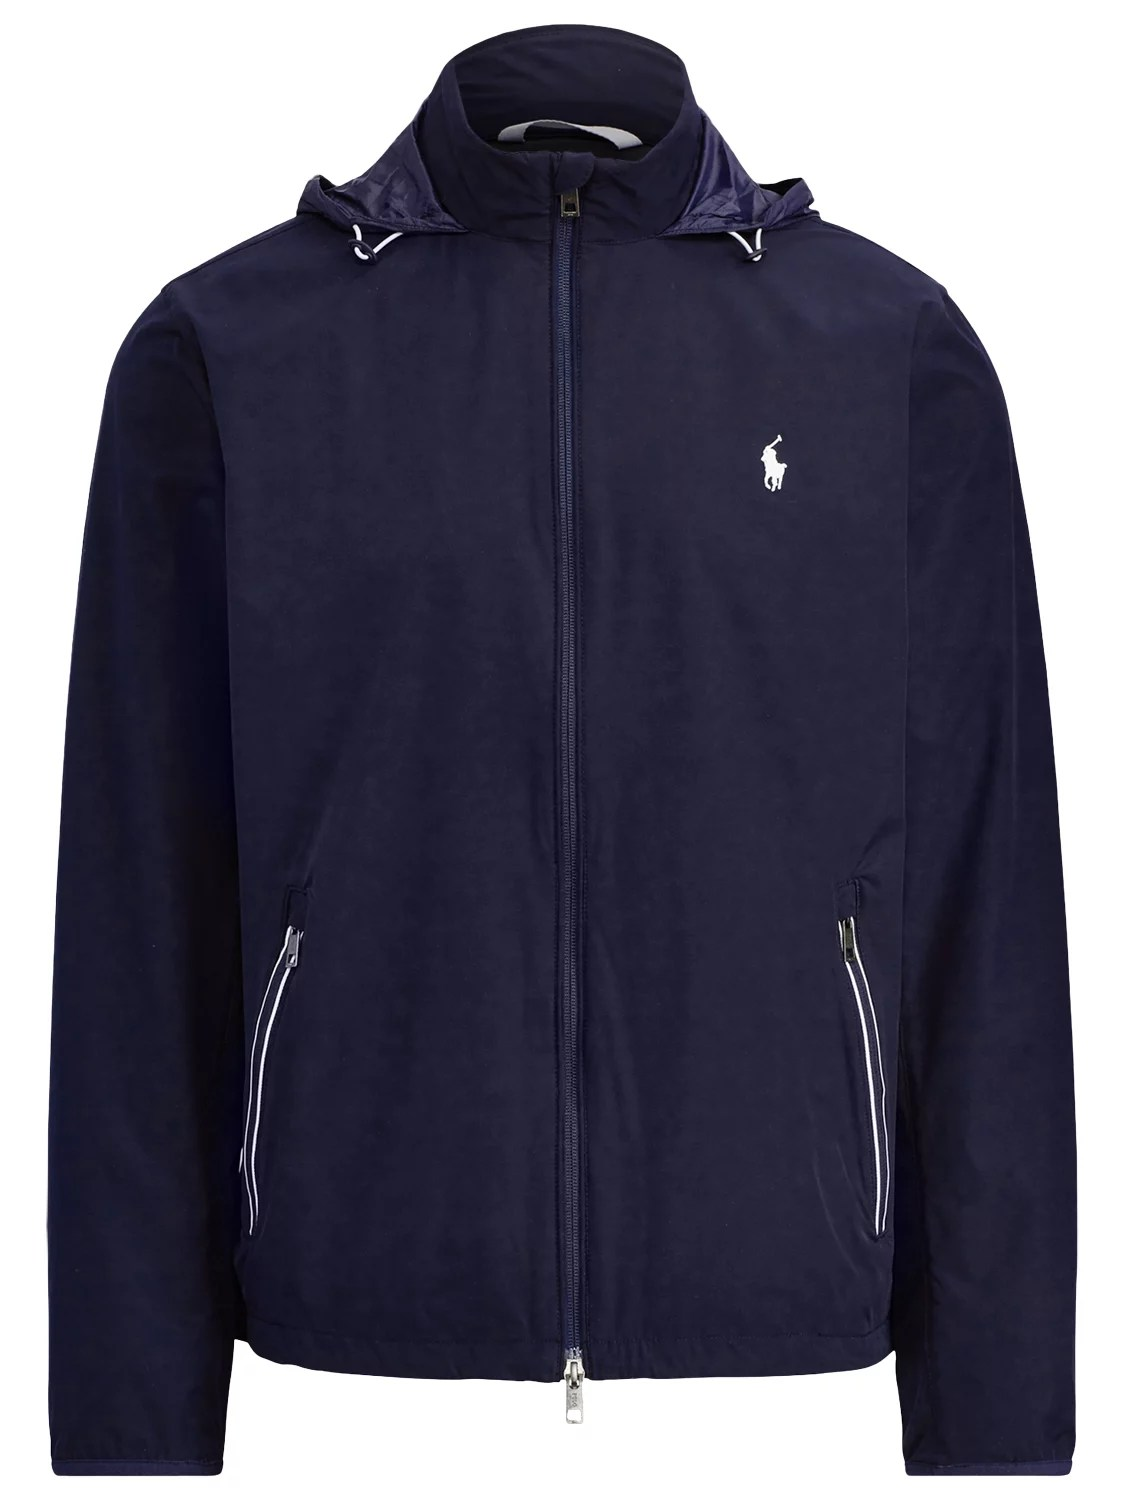 Anorak Chairs Polo Golf By Ralph Lauren Hooded Packable Anorak French